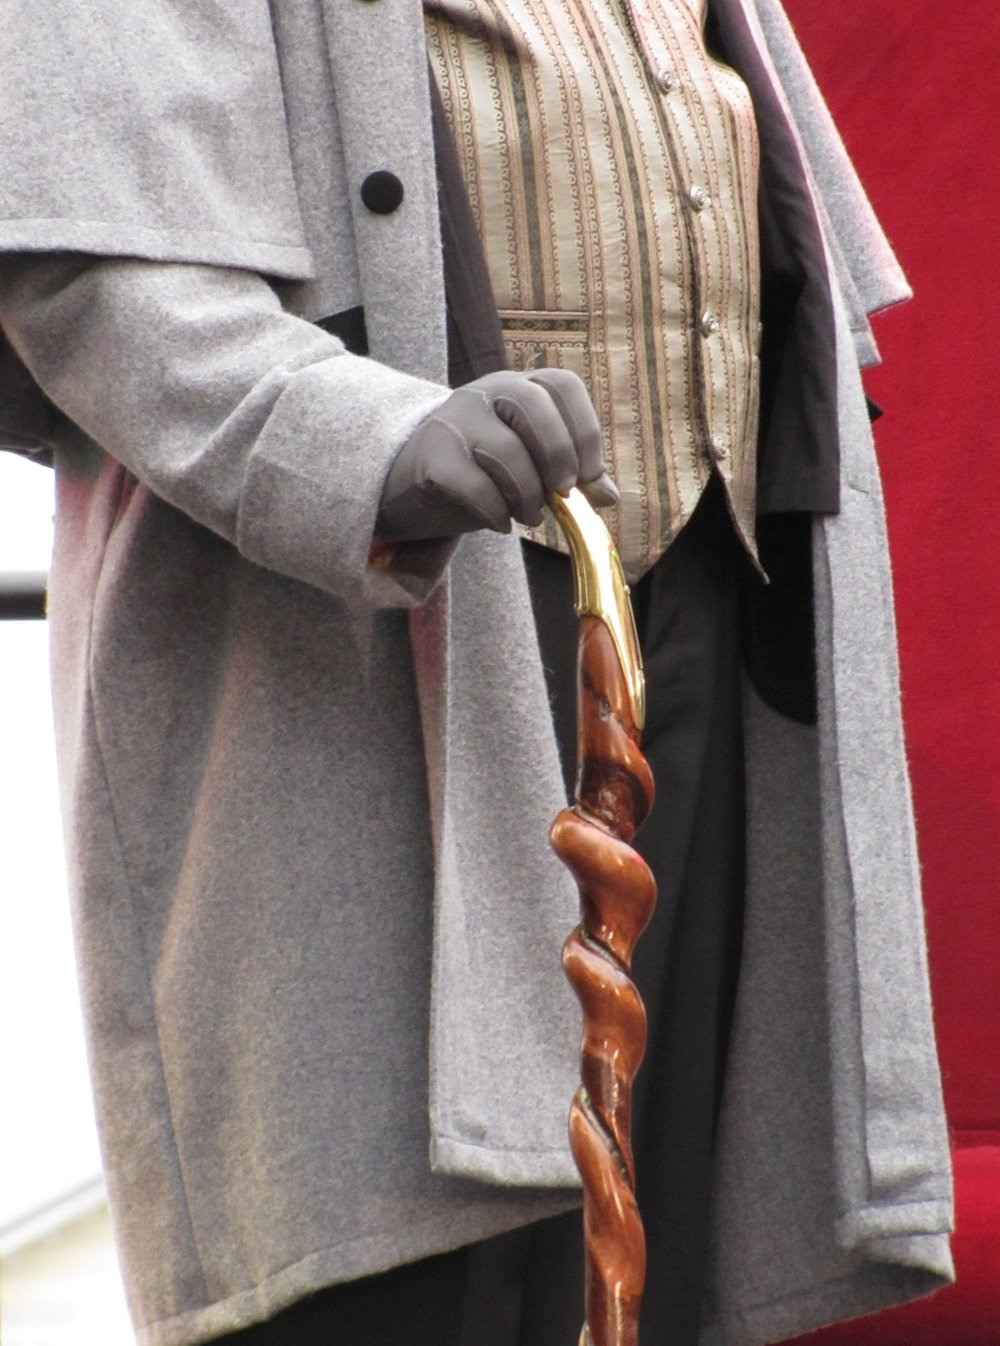 gentleman's cane, jacket, and vest in costume